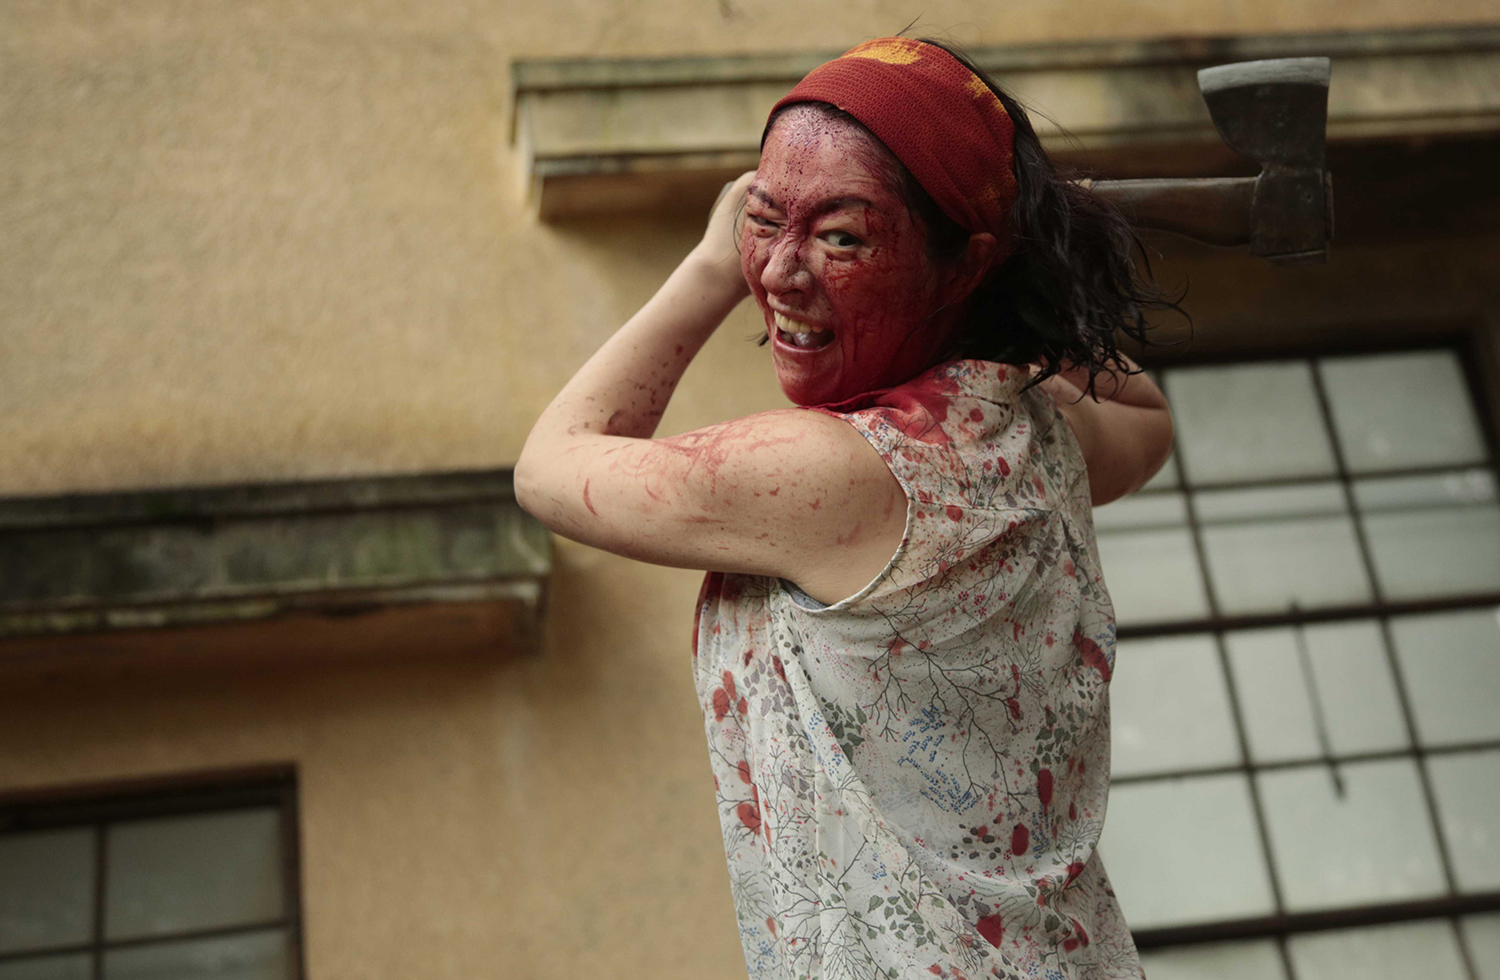 bloody faced woman, one cut of the dead